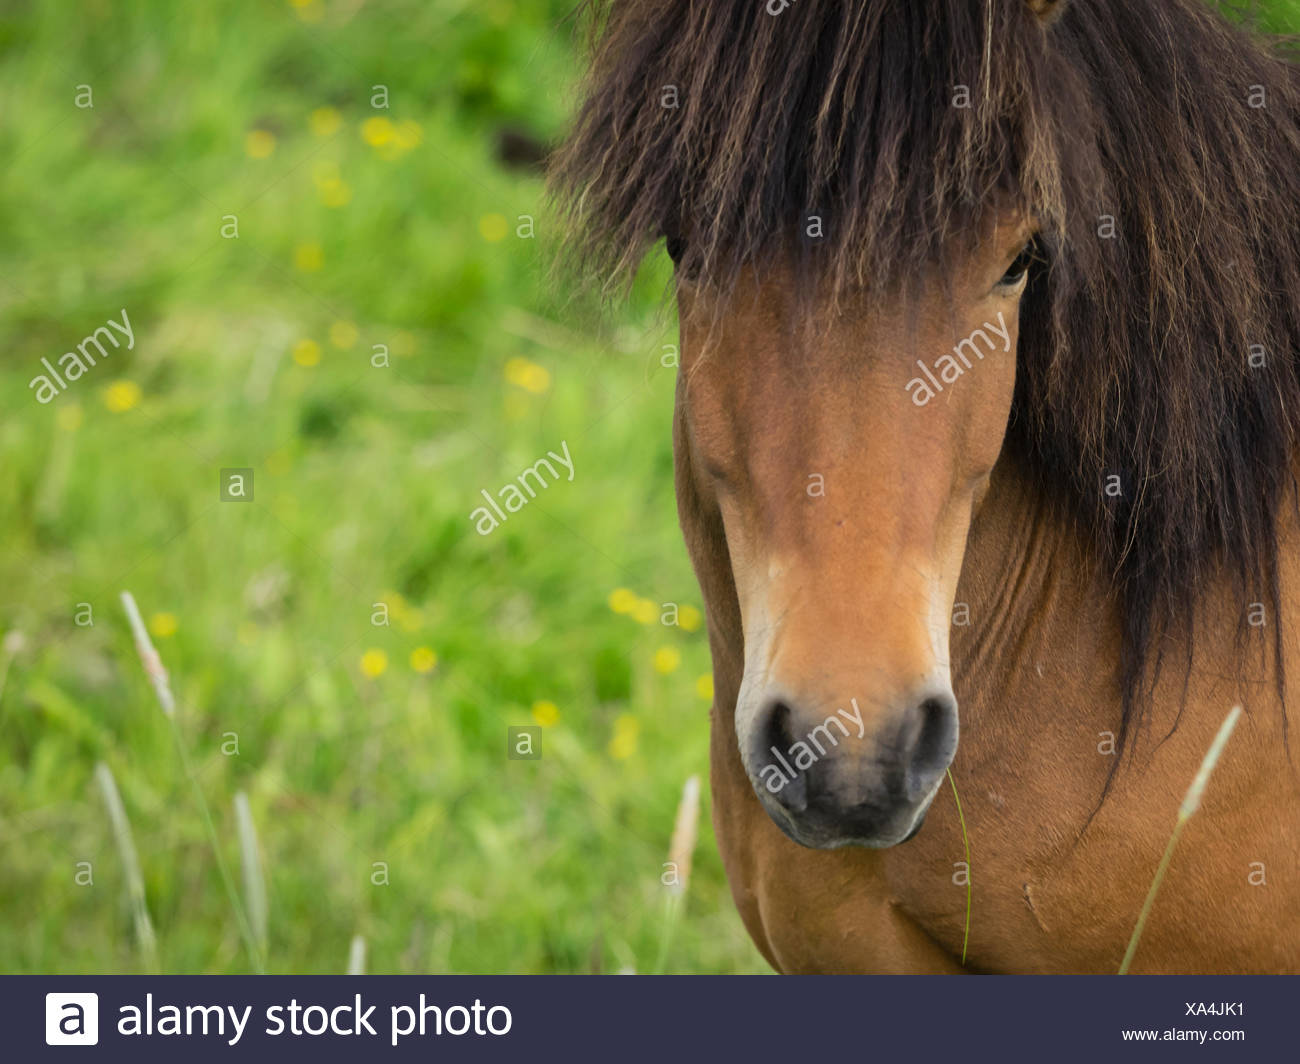 An Icelandic bay horse with long mane and forelock. - Stock Image